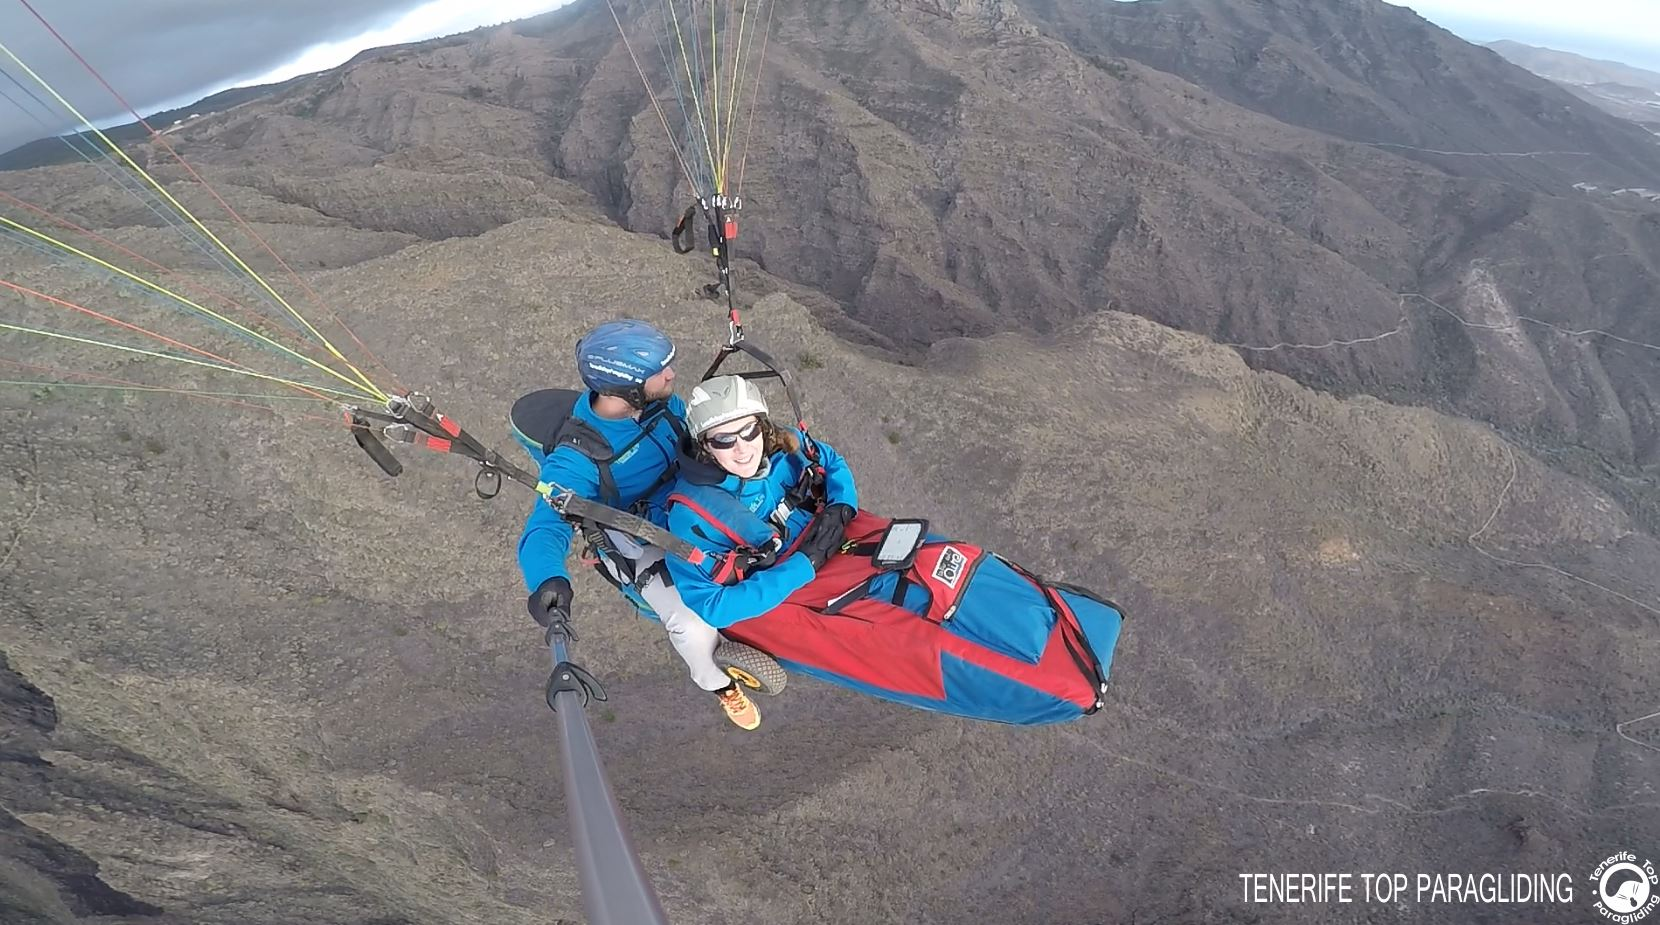 Adapted paragliding, a flight accessible to all